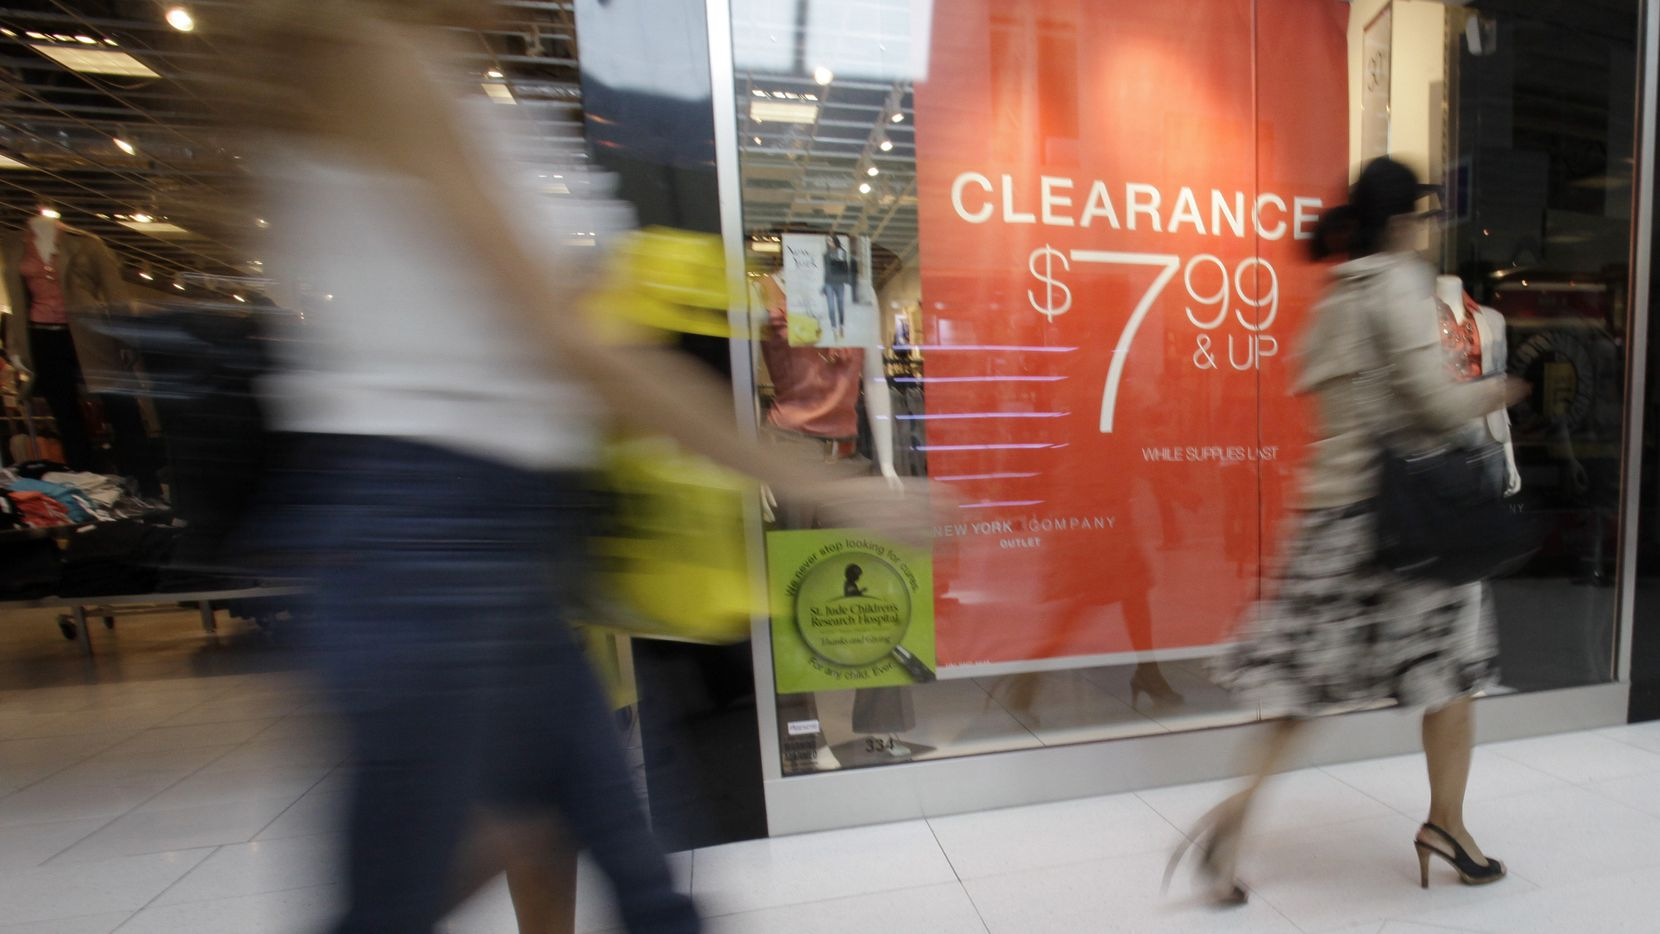 File photo of a New York & Company store in Miami. The retailer is owned by RTW Retailwinds, which filed for bankruptcy on July 13, 2020, and said it may close its stores.